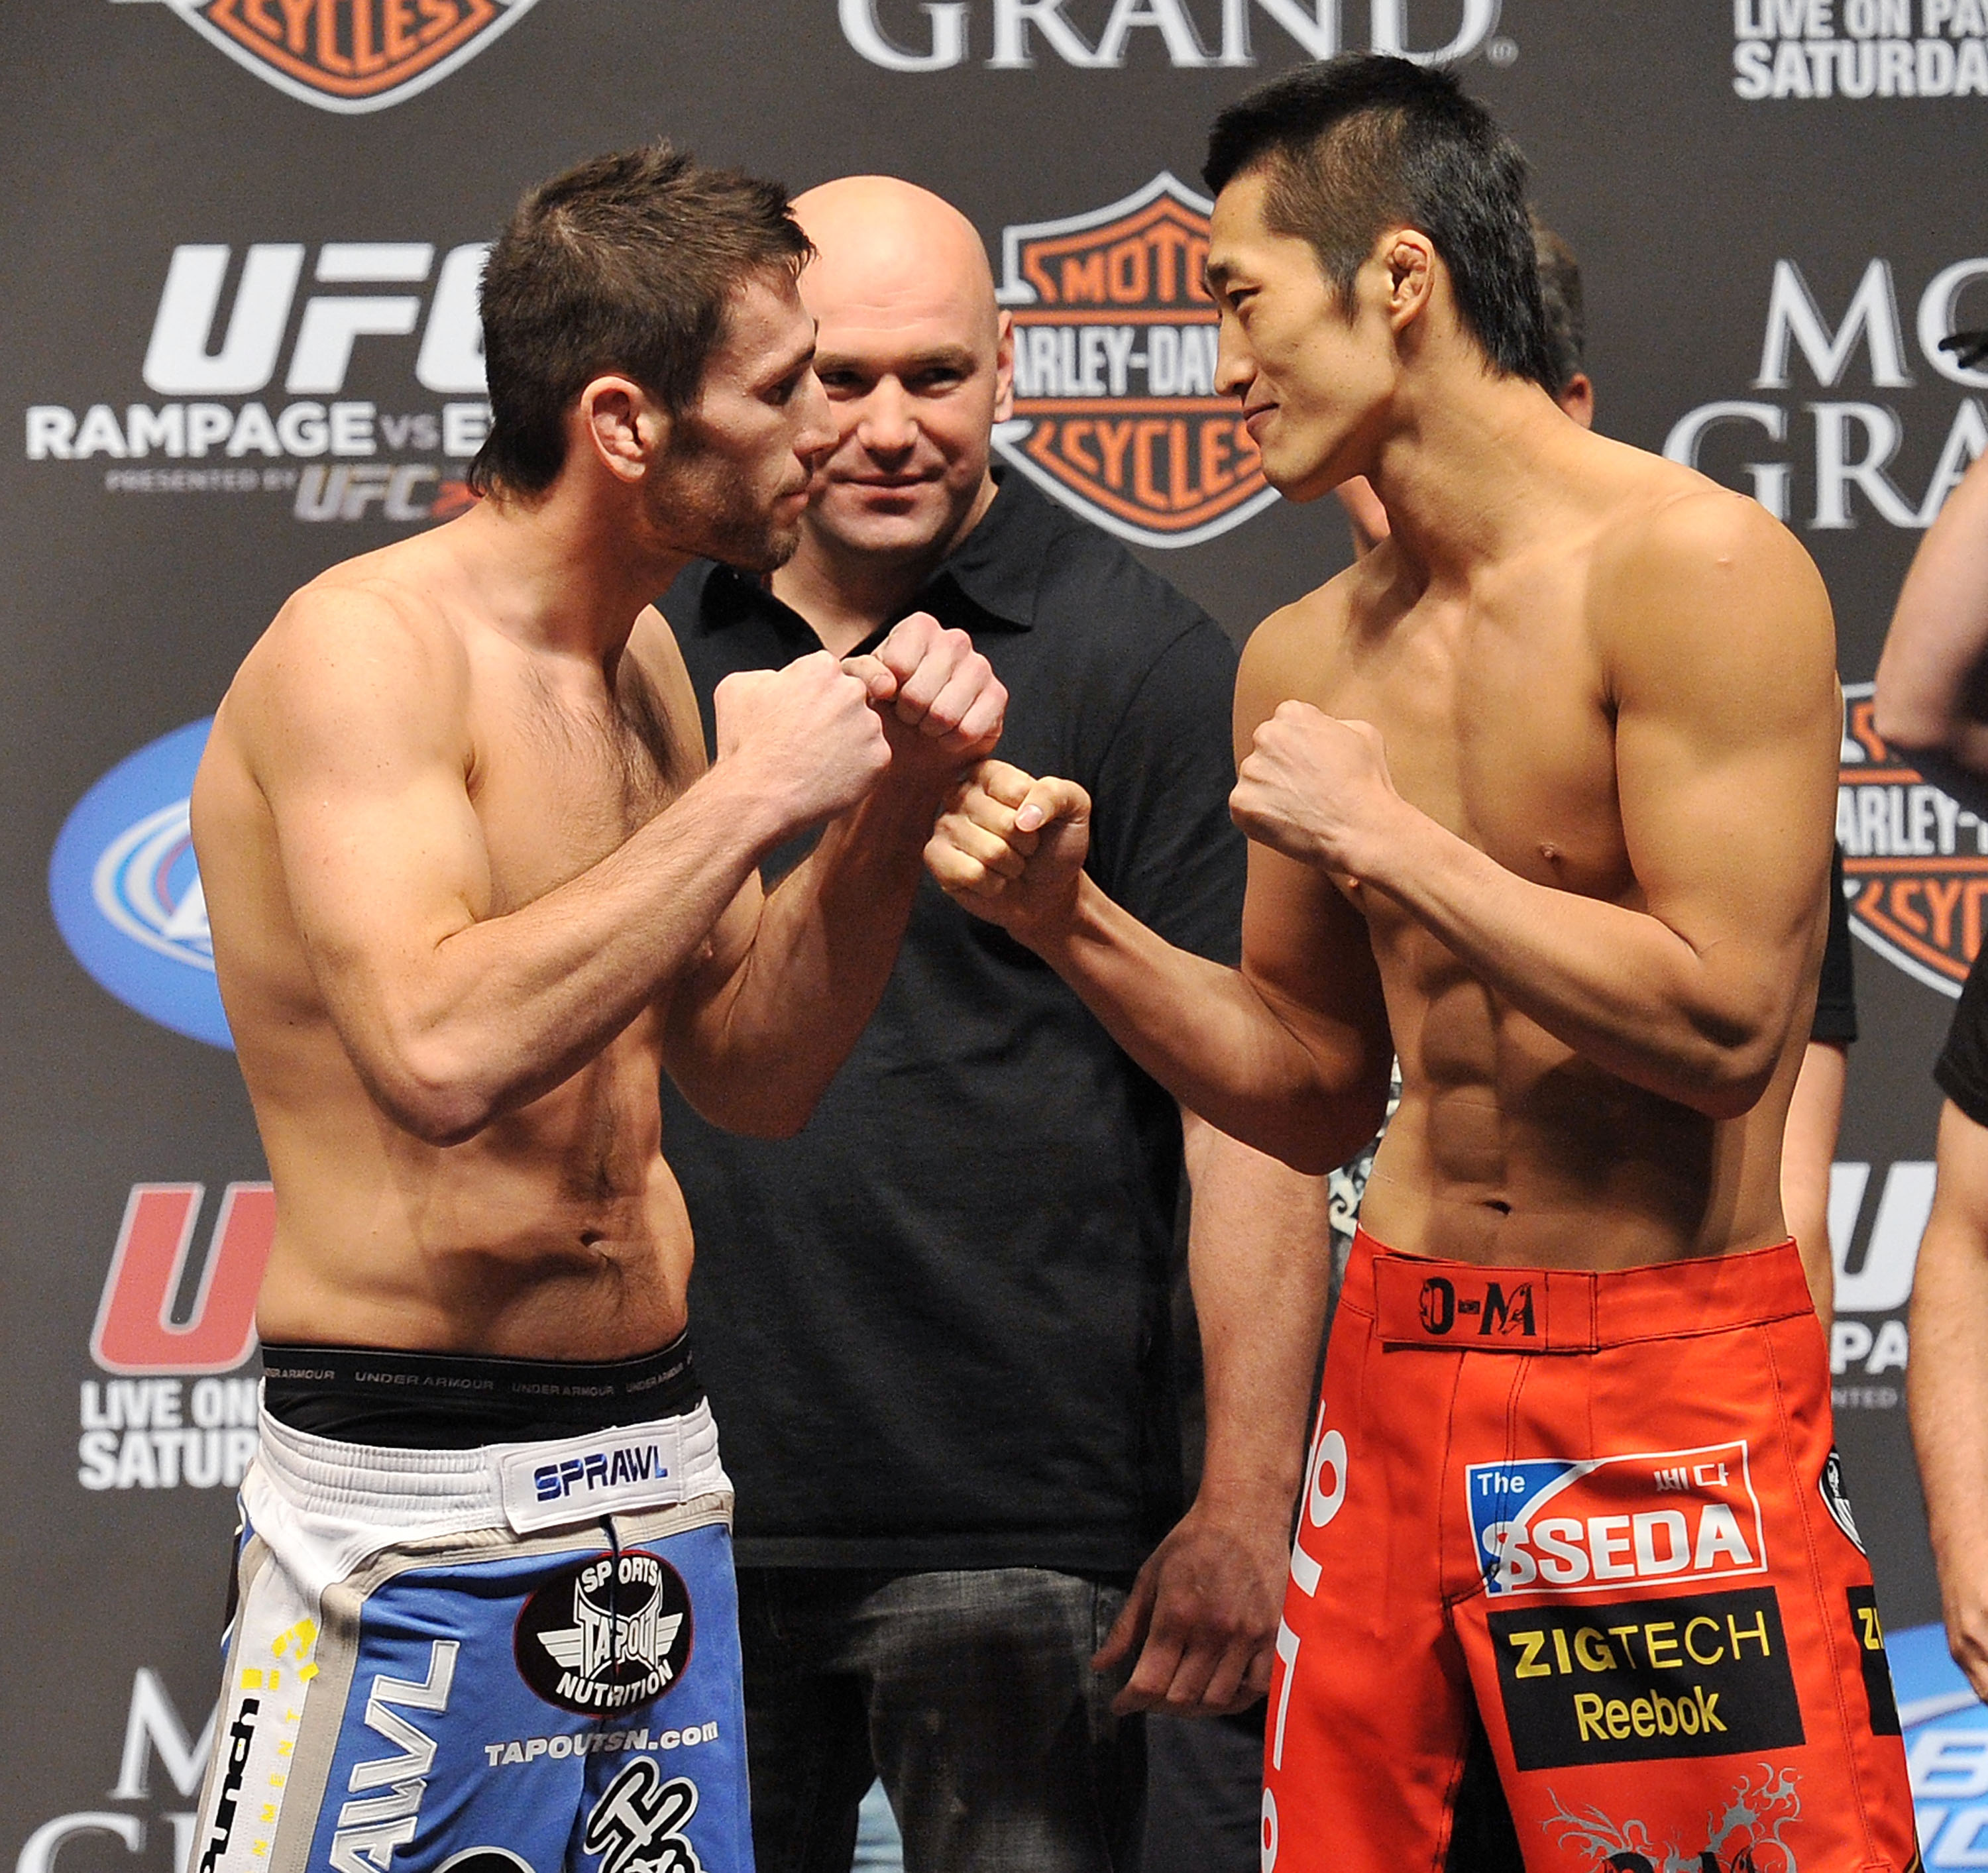 LAS VEGAS - MAY 28:  UFC fighter Amir Sadollah (L) faces off against UFC fighter Dong Hyun Kim (R) at UFC 114: Rampage versus Rashad at the Mandalay Bay Hotel on May 28, 2010 in Las Vegas, Nevada.  (Photo by Jon Kopaloff/Getty Images)